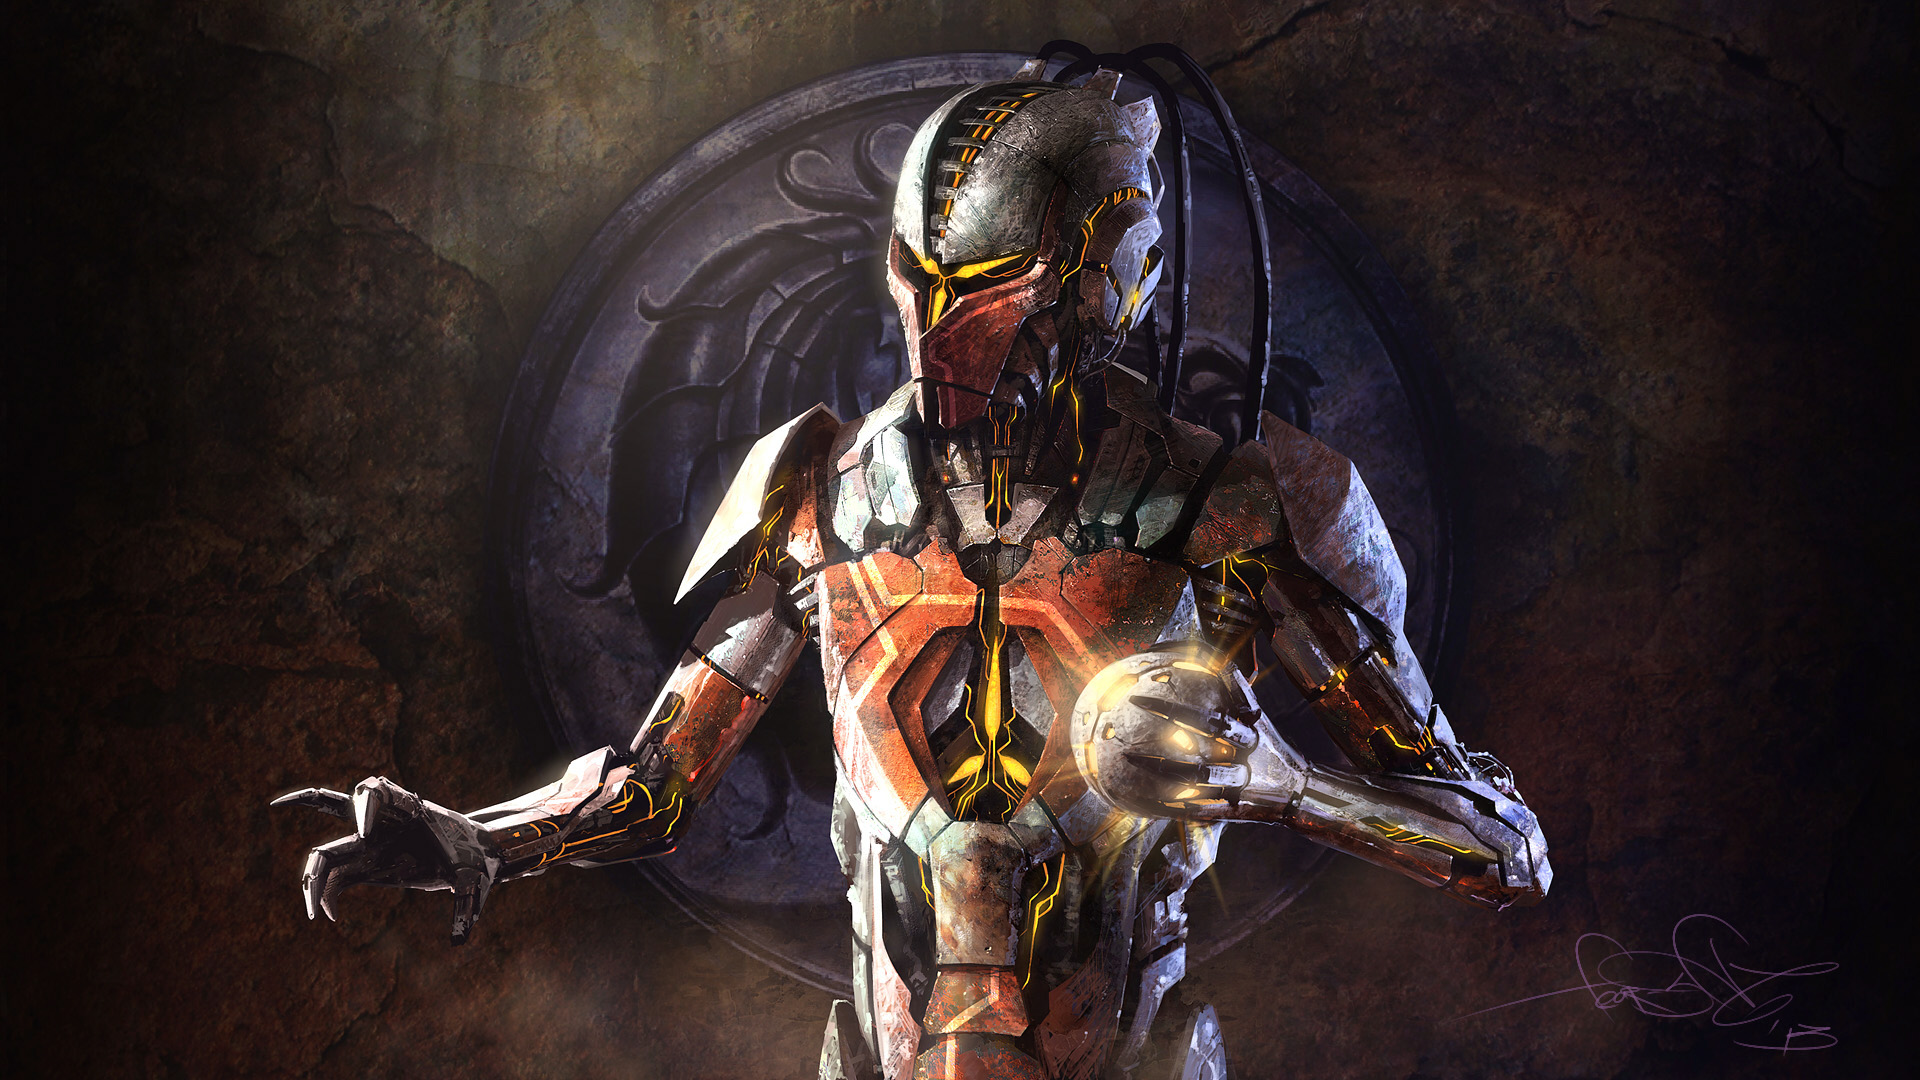 Sektor - Mortal Kombat art by fear-sAs ...